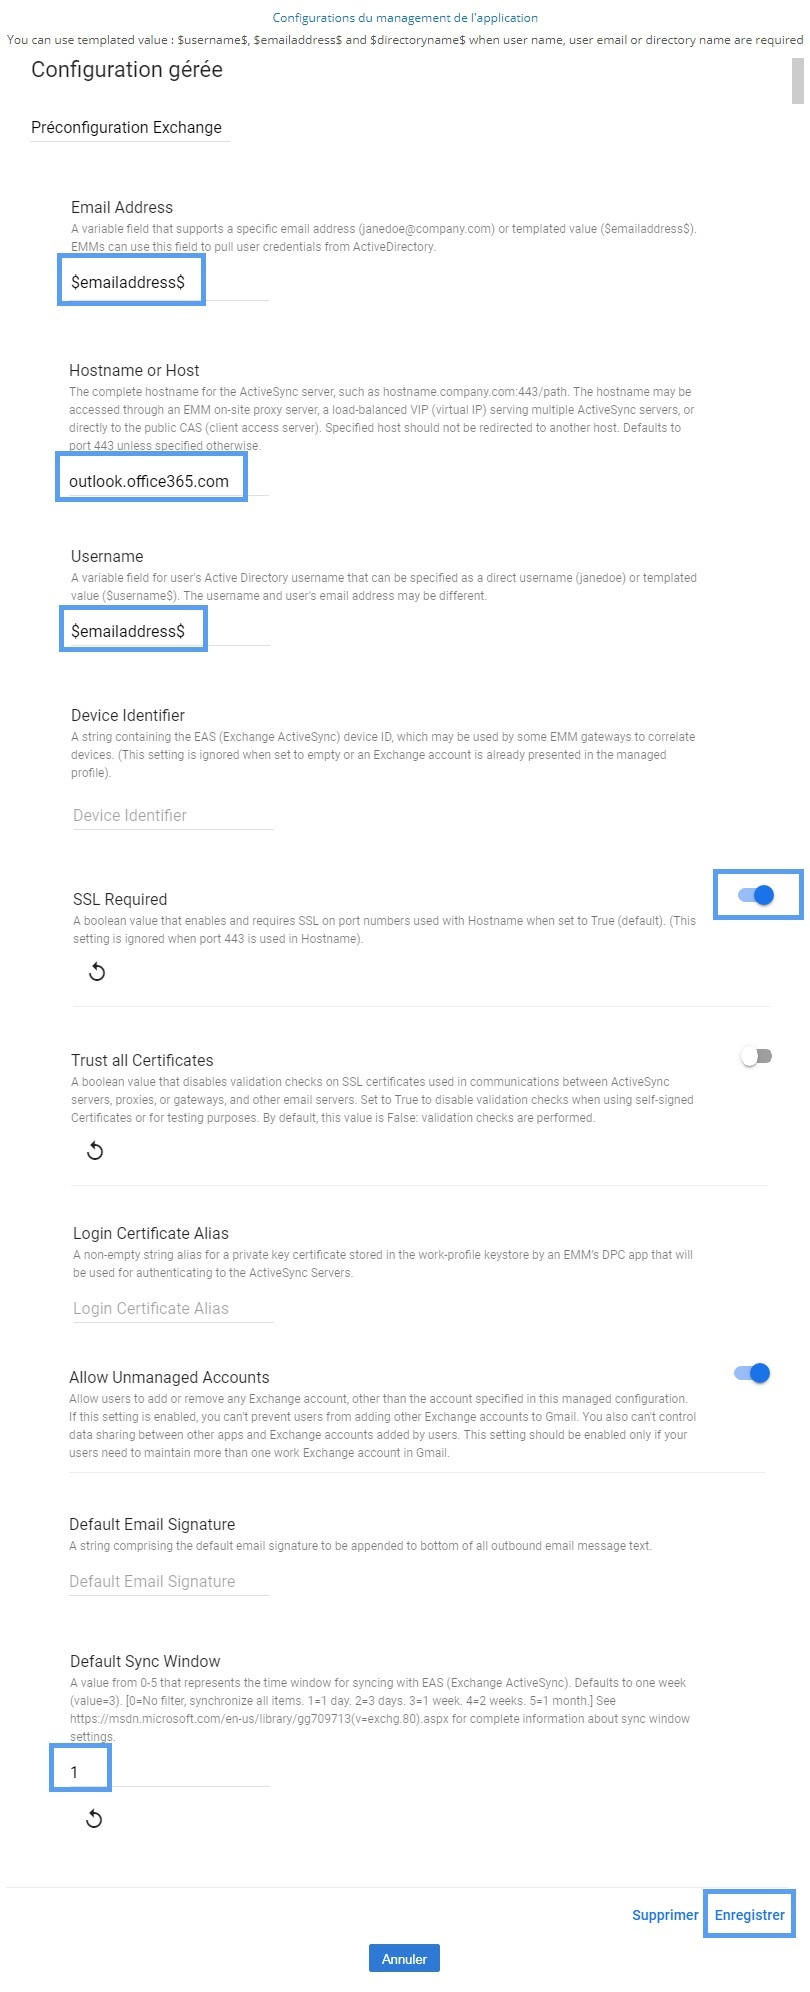 How to preconfigure Exchange account on Gmail - Help resources